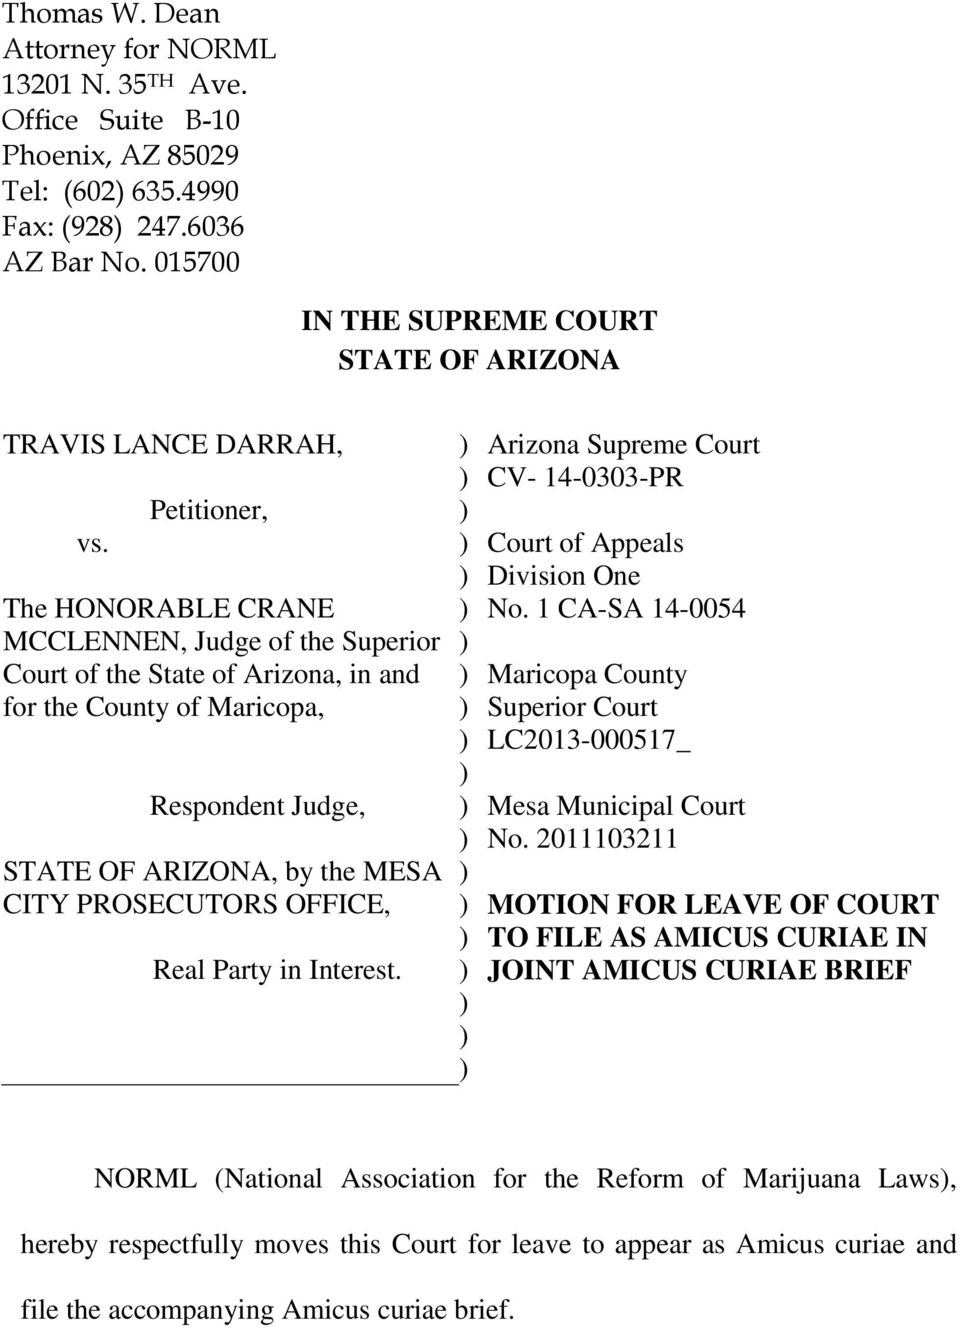 Petitioner, The HONORABLE CRANE MCCLENNEN, Judge of the Superior Court of the State of Arizona, in and for the County of Maricopa, Respondent Judge, STATE OF ARIZONA, by the MESA CITY PROSECUTORS